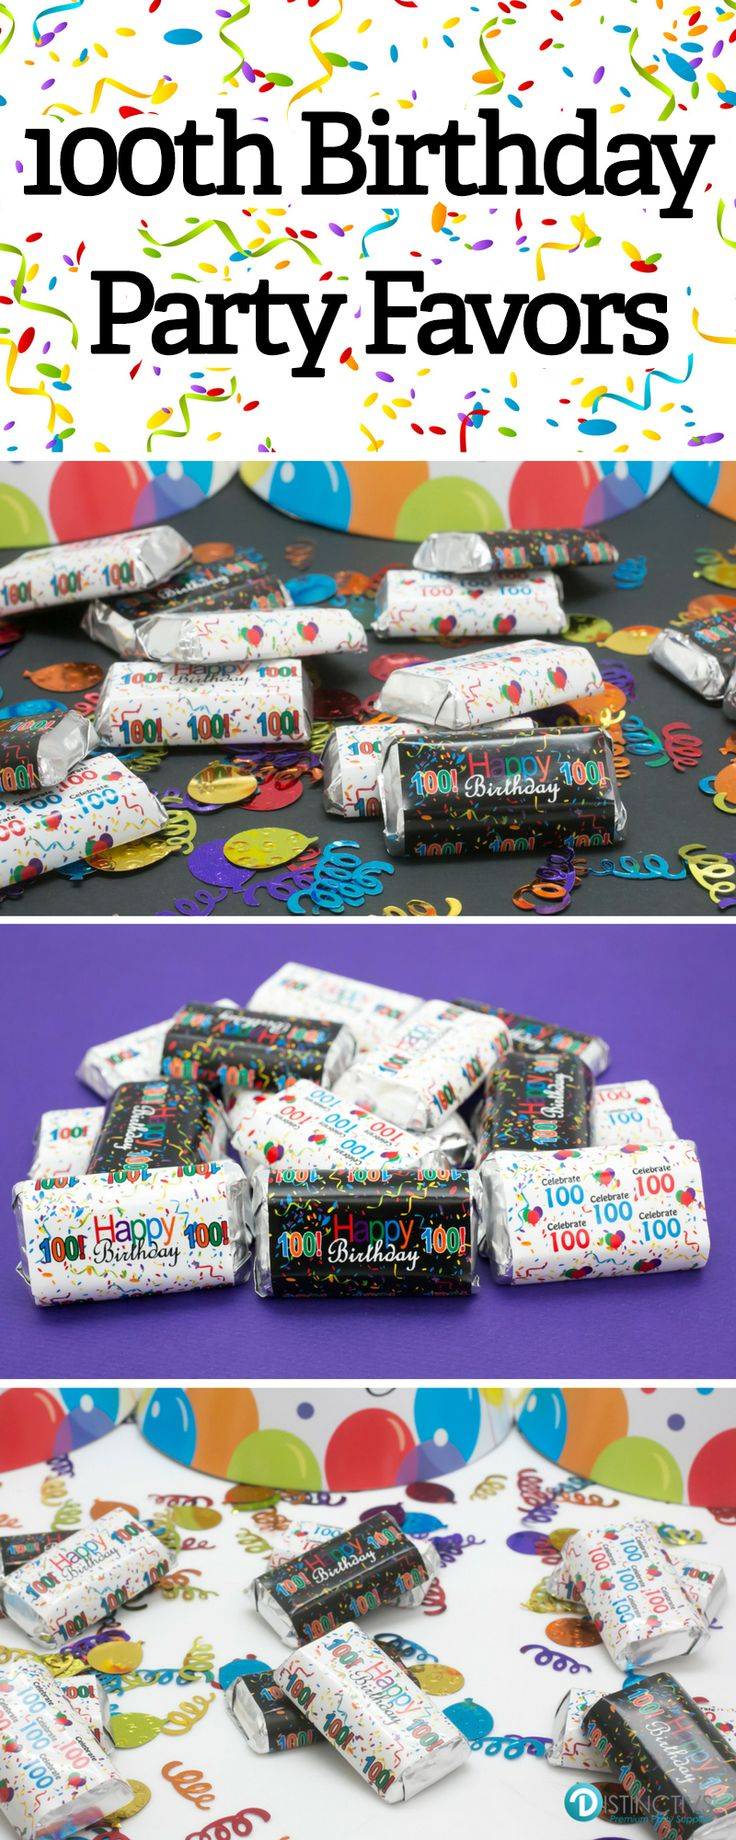 57 Best 100th Happy Birthday Party Ideas Images On